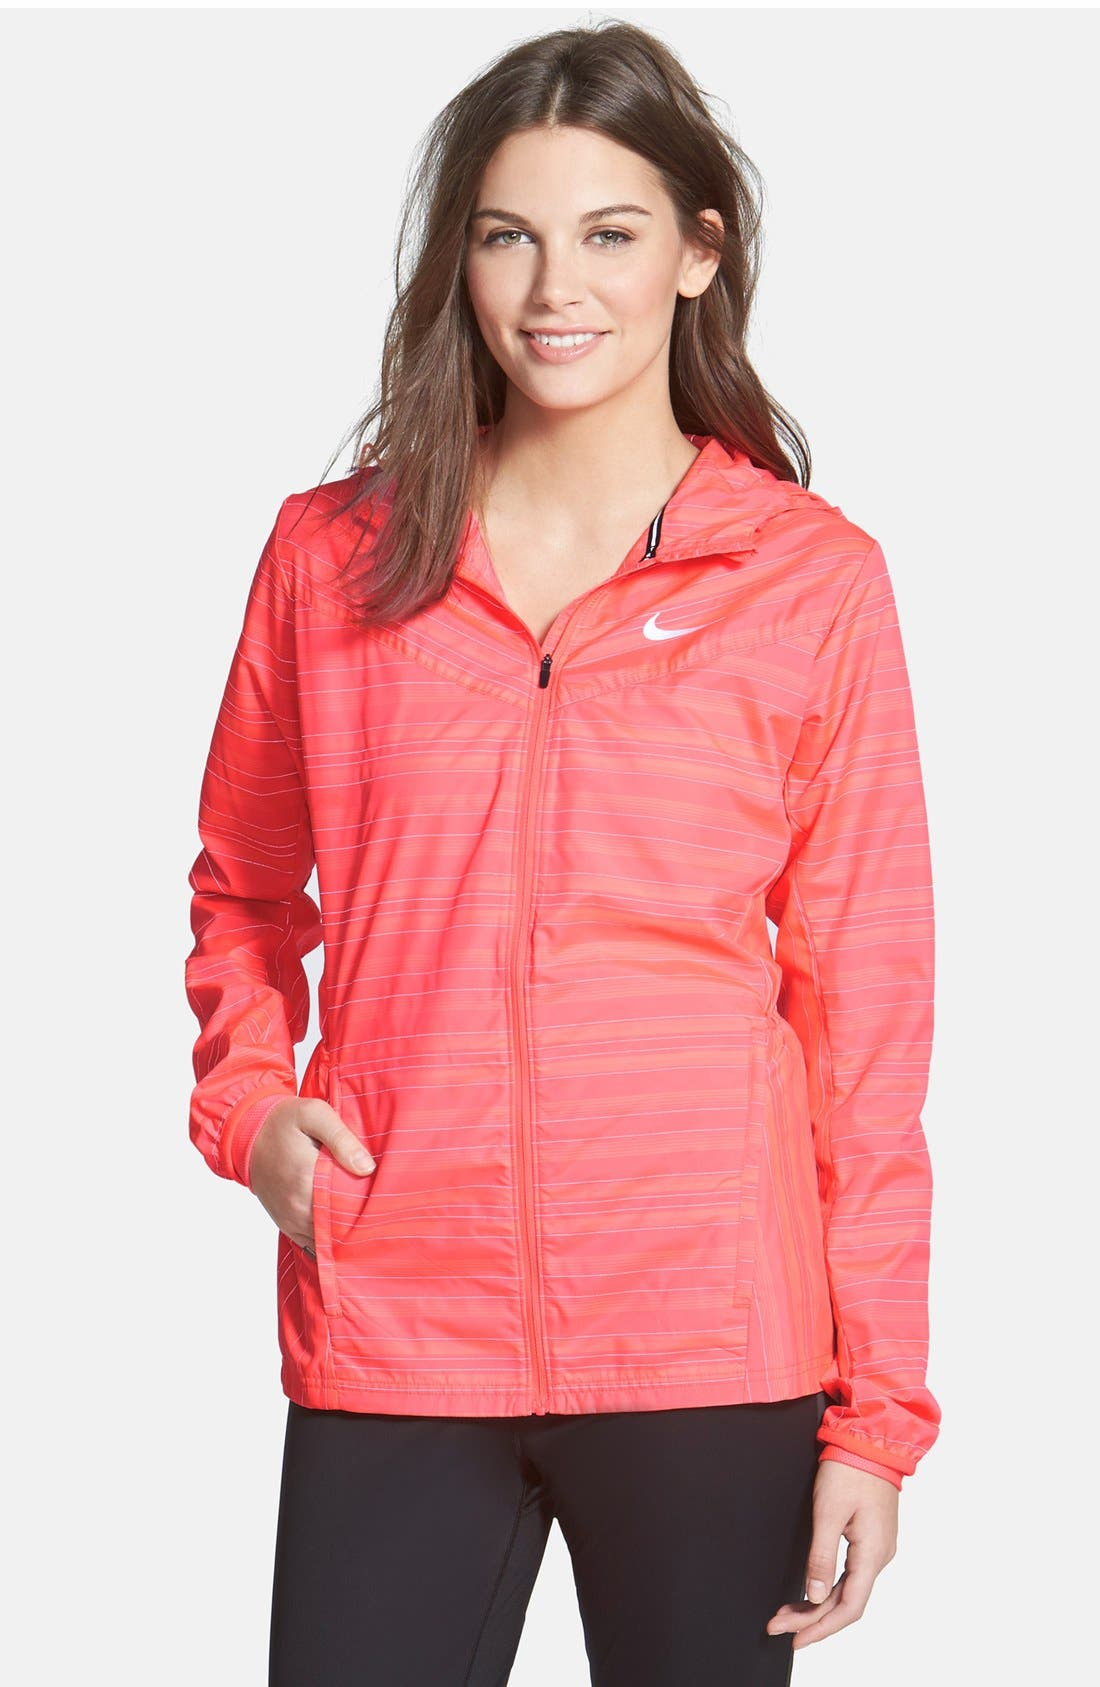 'VAPOR' REFLECTIVE RUNNING JACKET